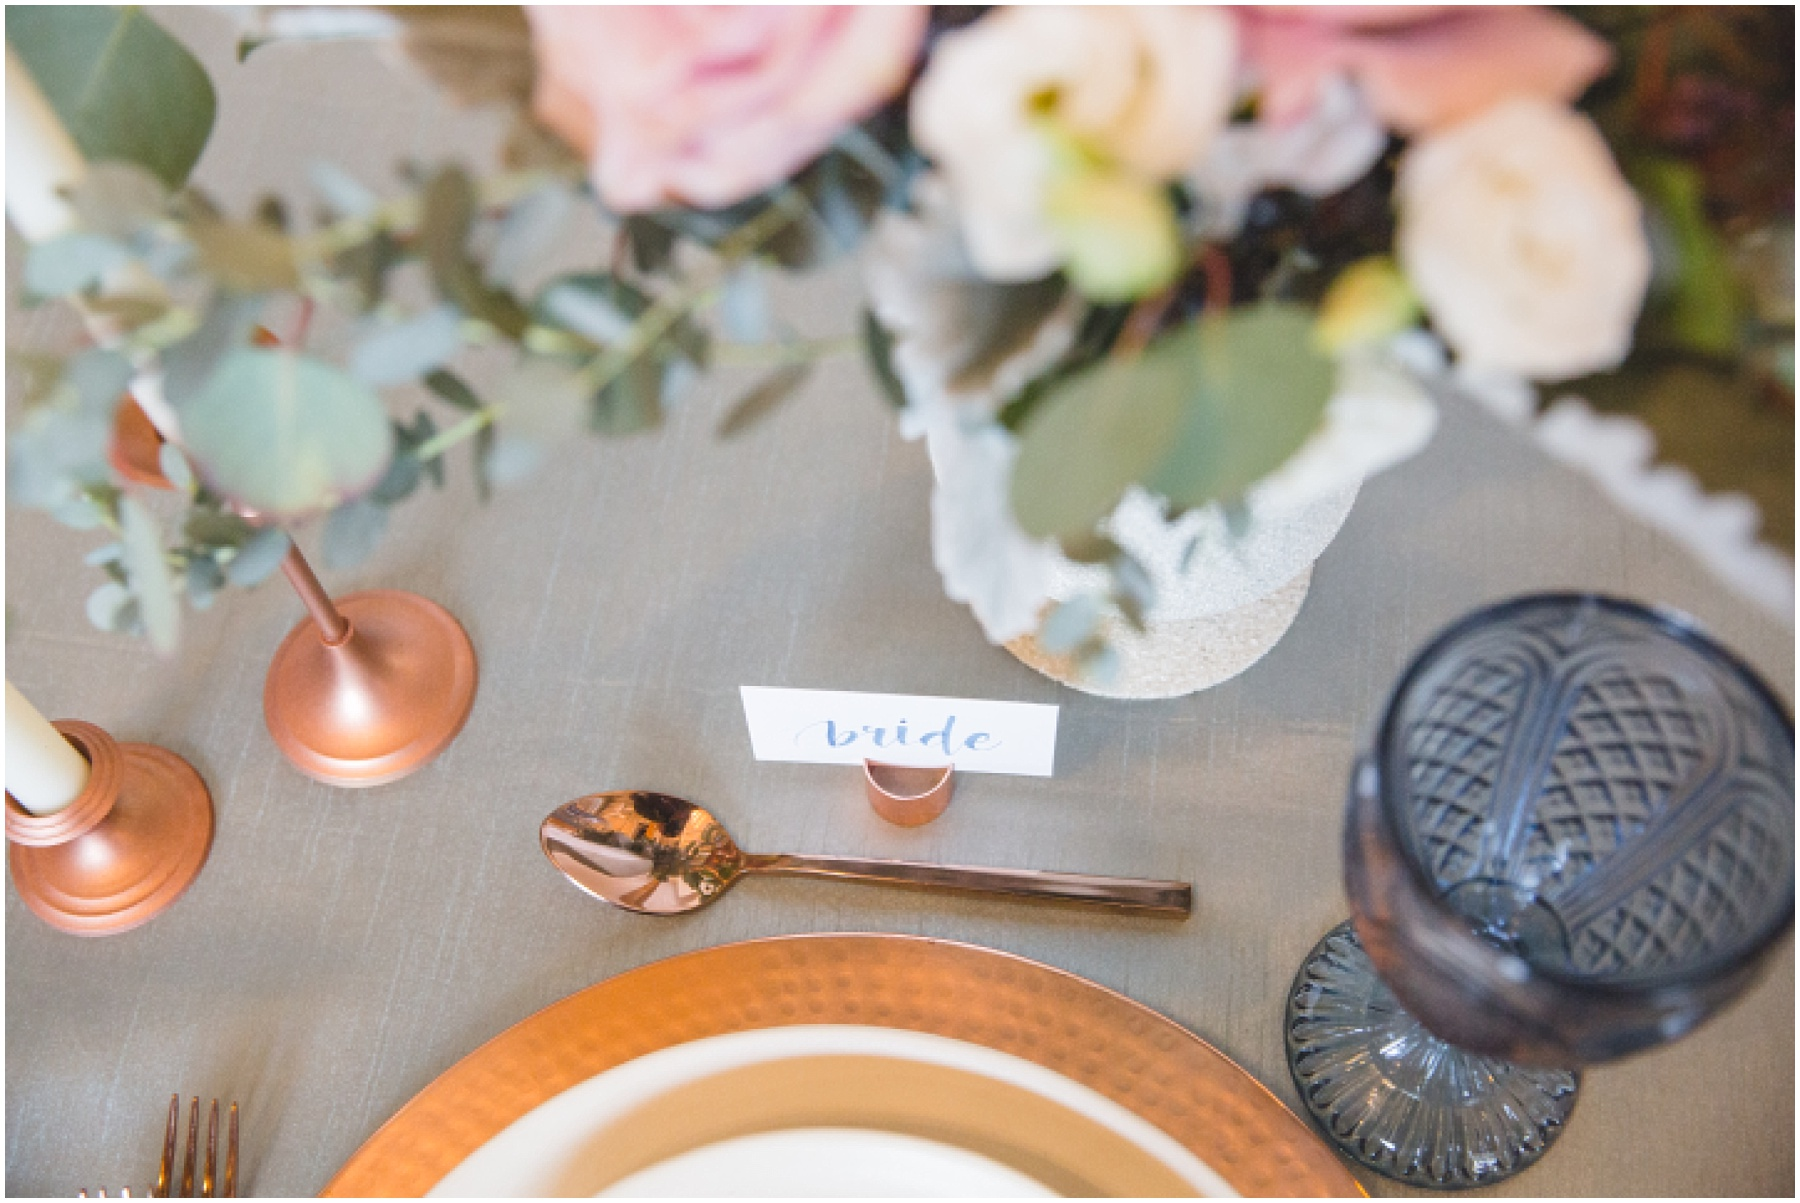 Styled wedding table scape with calligraphy place cards, rose gold accents, blue glass, and soft romantic florals by Social & Co Events.